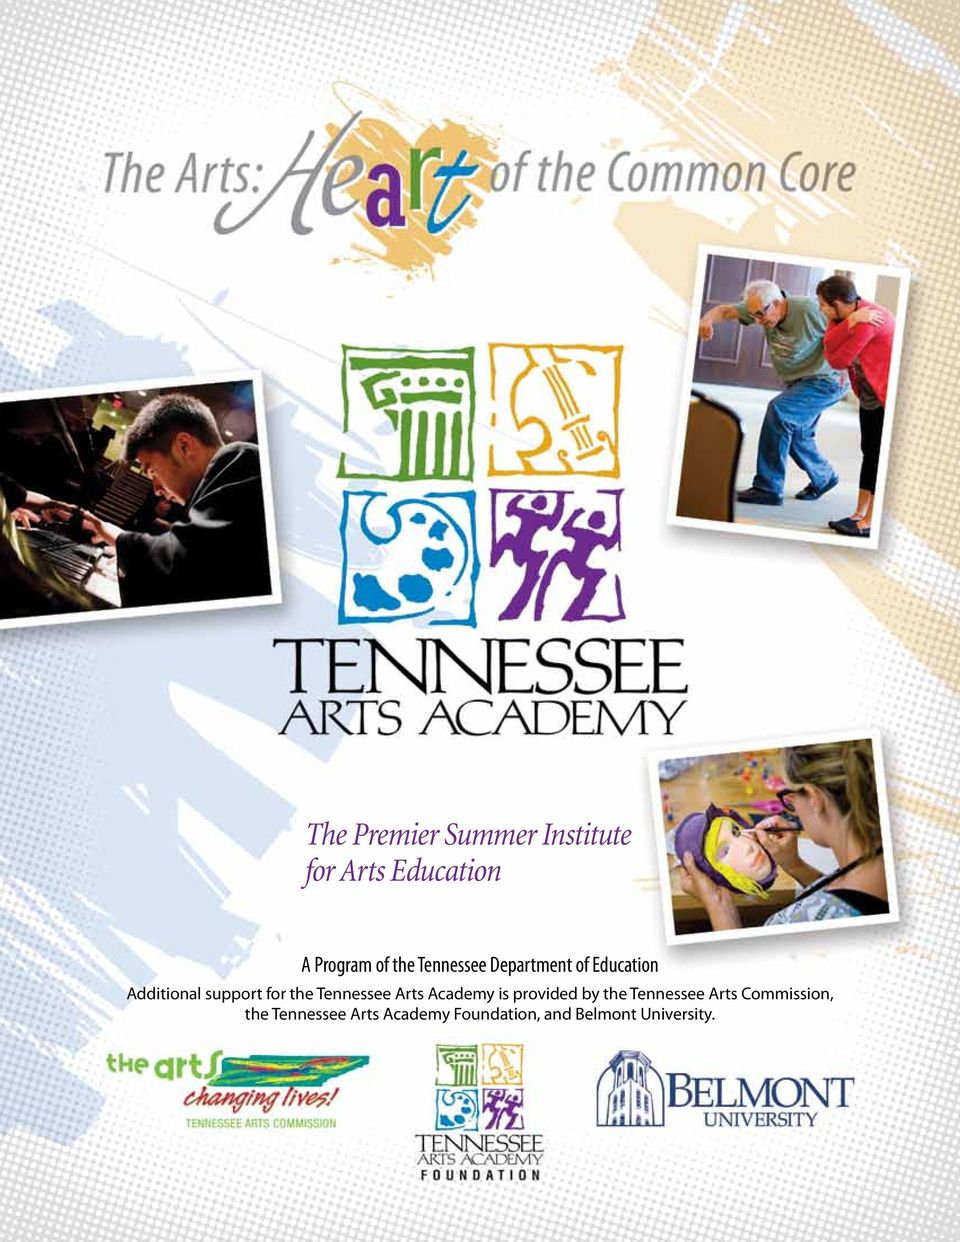 Tennessee Arts Academy is provided by the Tennessee Arts